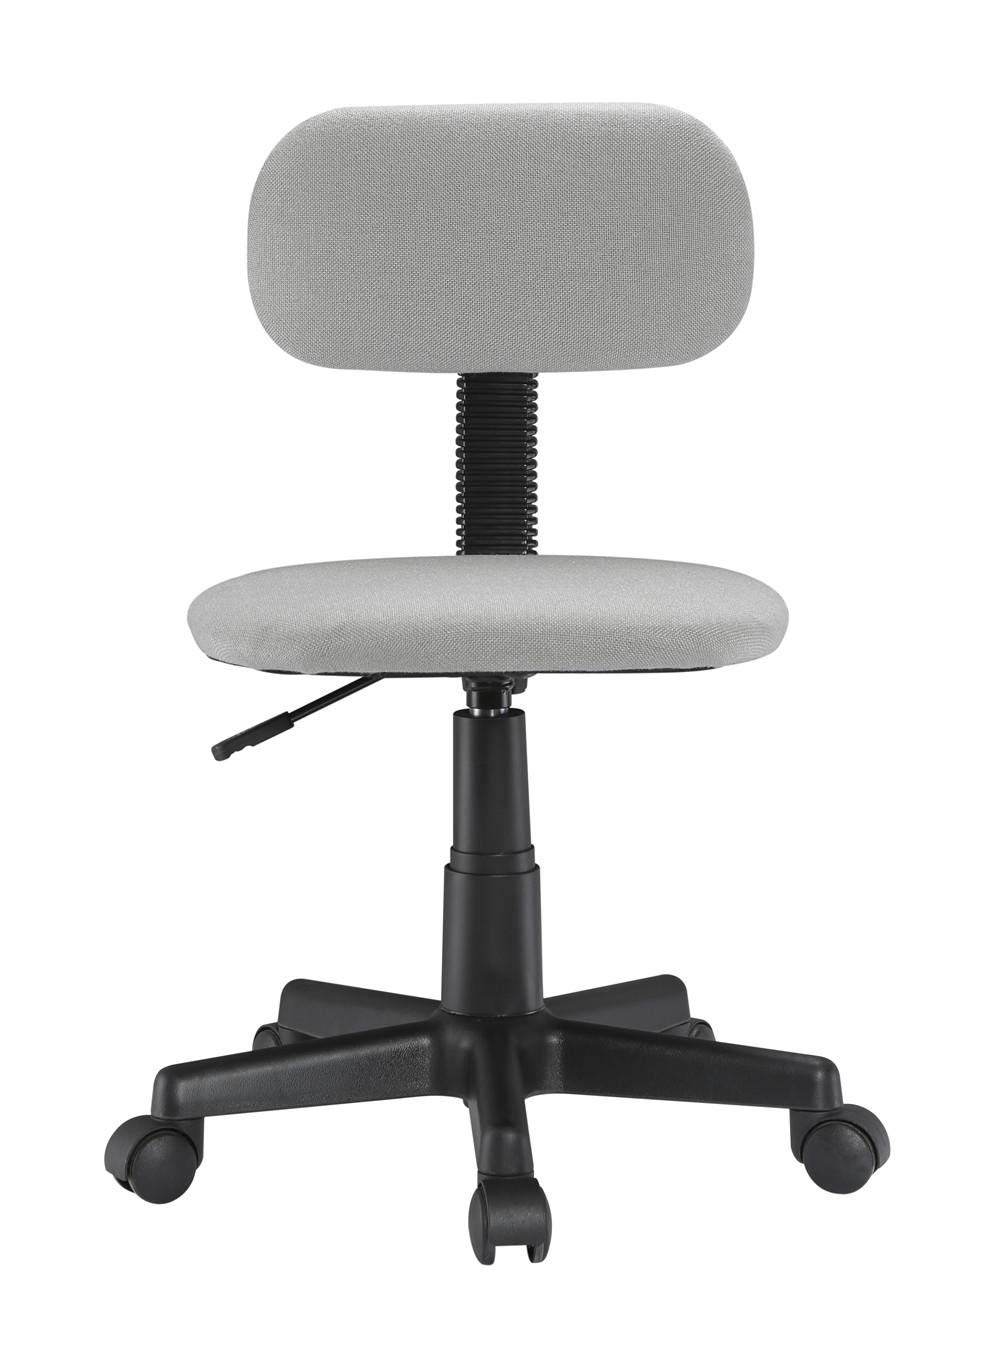 (not Included Desk) PrimeCables Childrens Ergonomic Height Adjustable 360 Swivel Student Study Mid-Back Mesh Desk Chair Grey